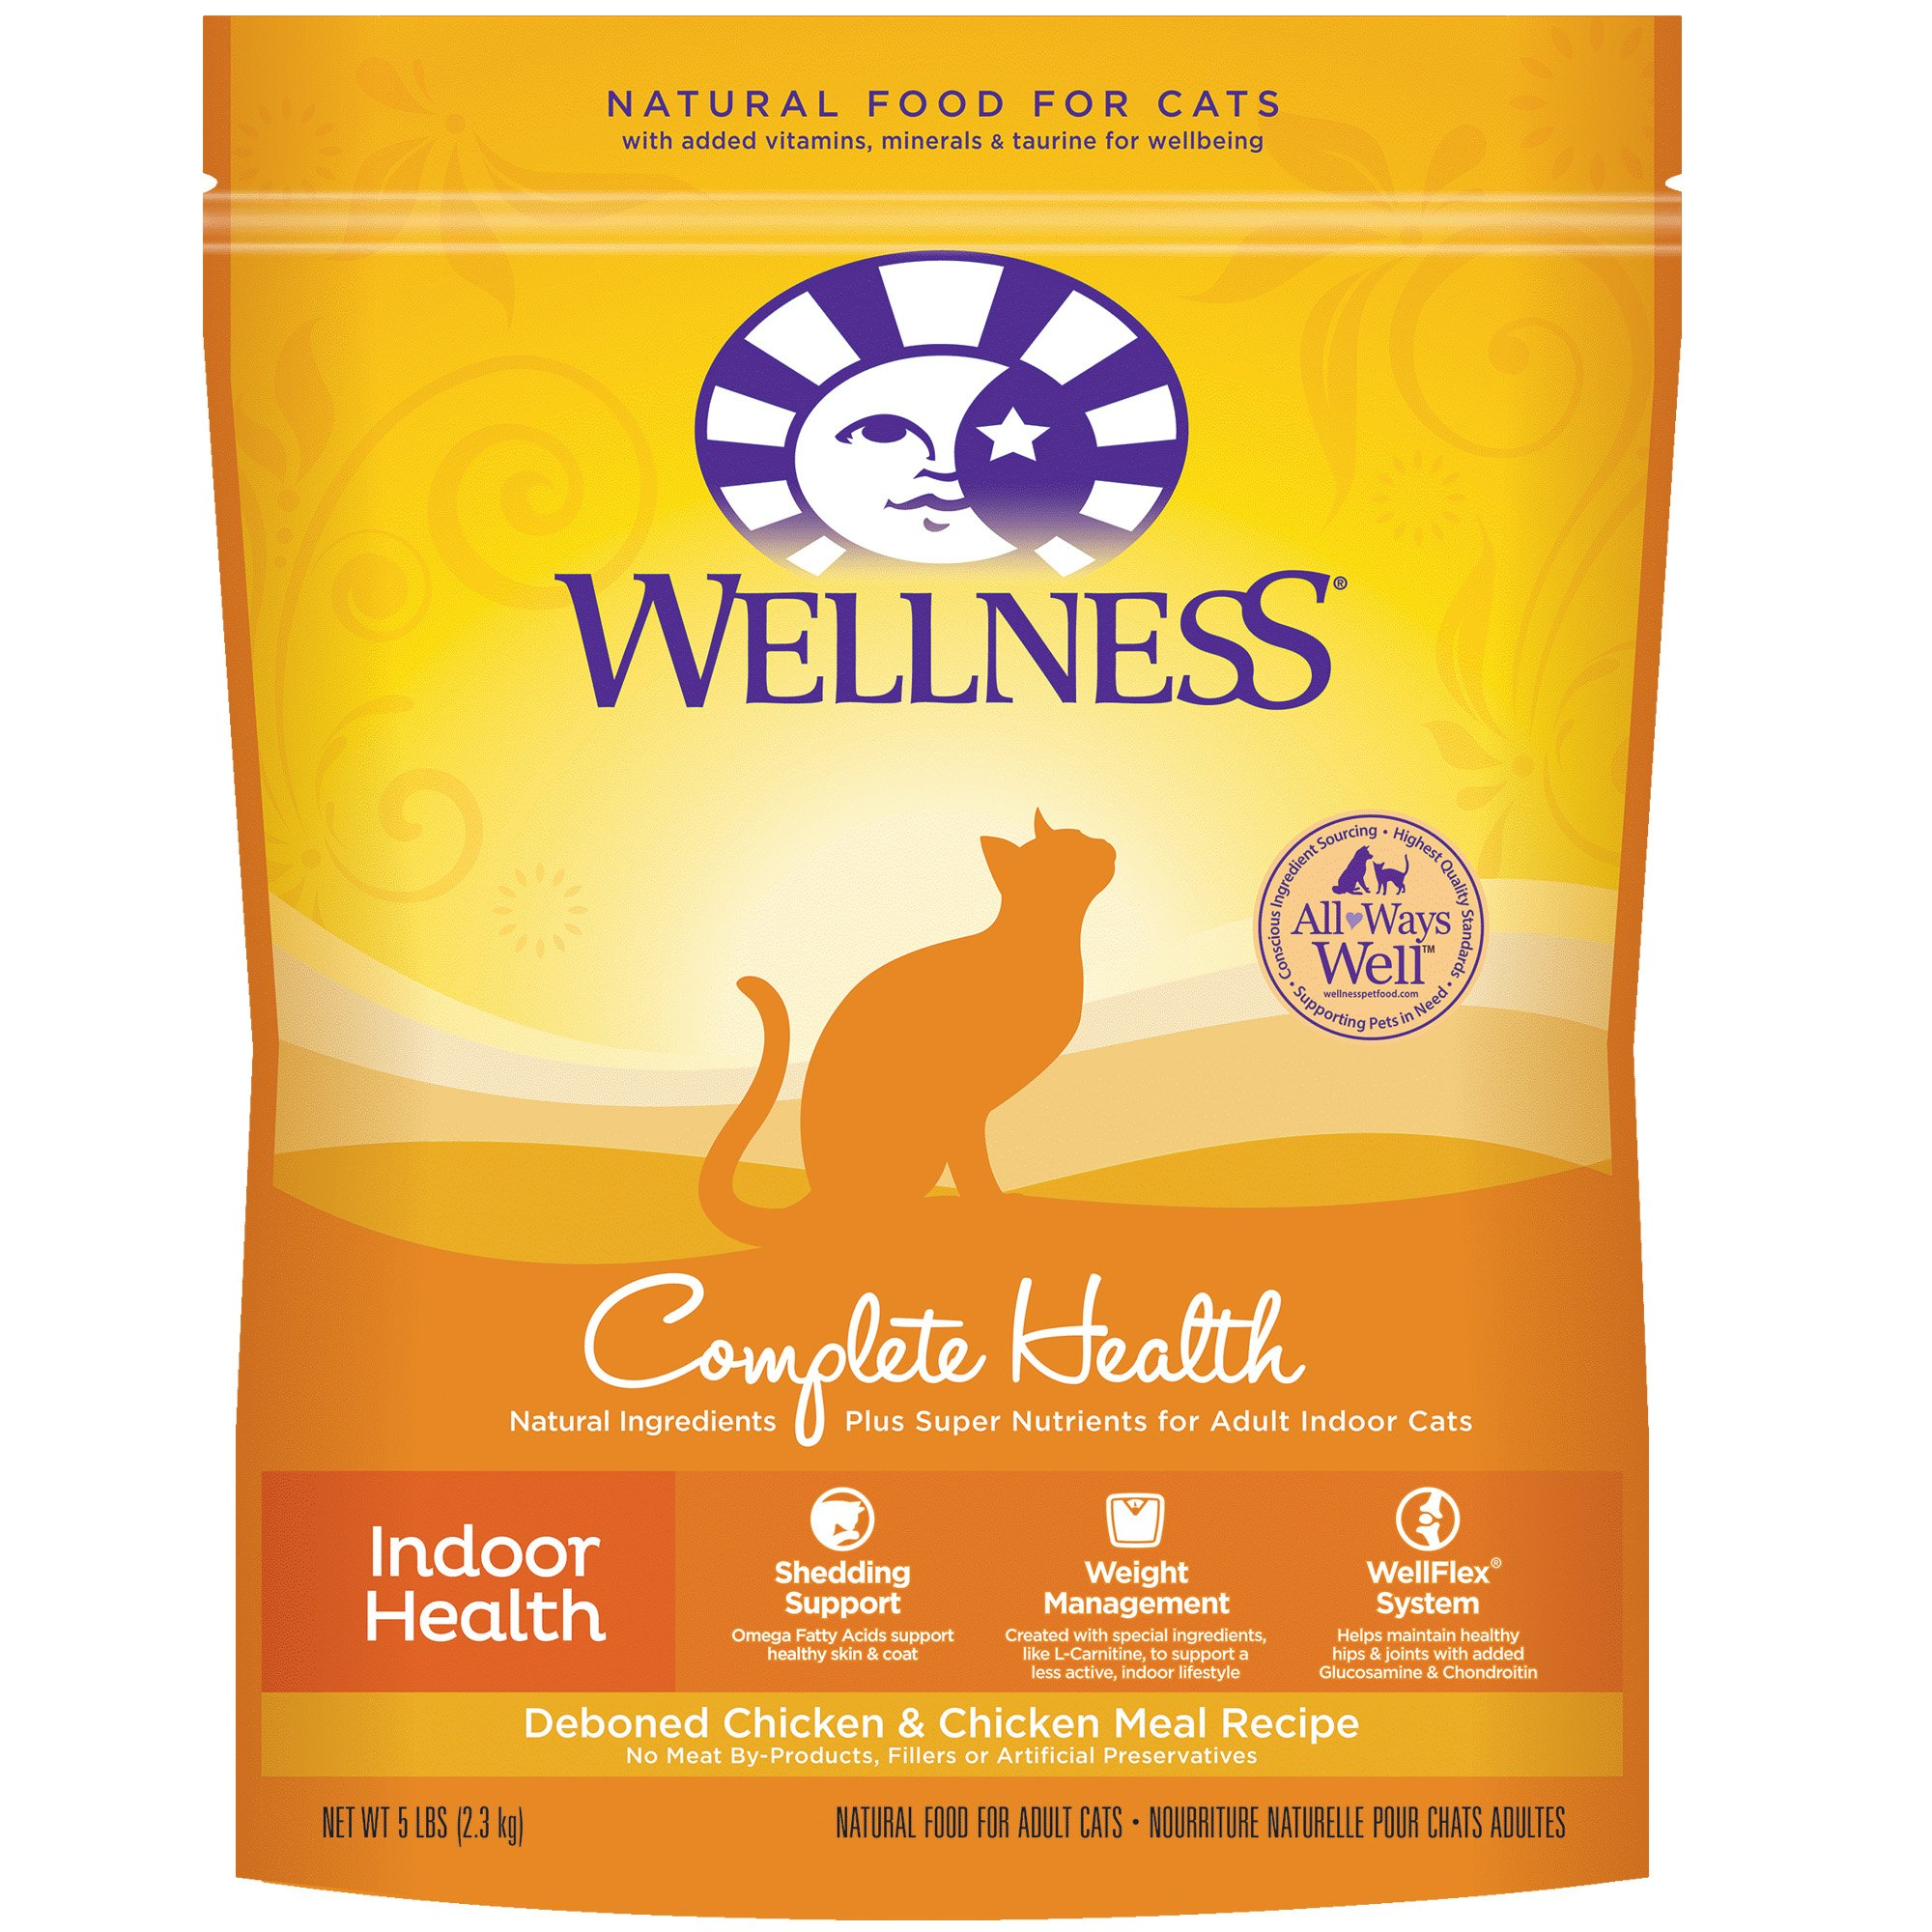 Wellness Complete Health Natural Cat Food